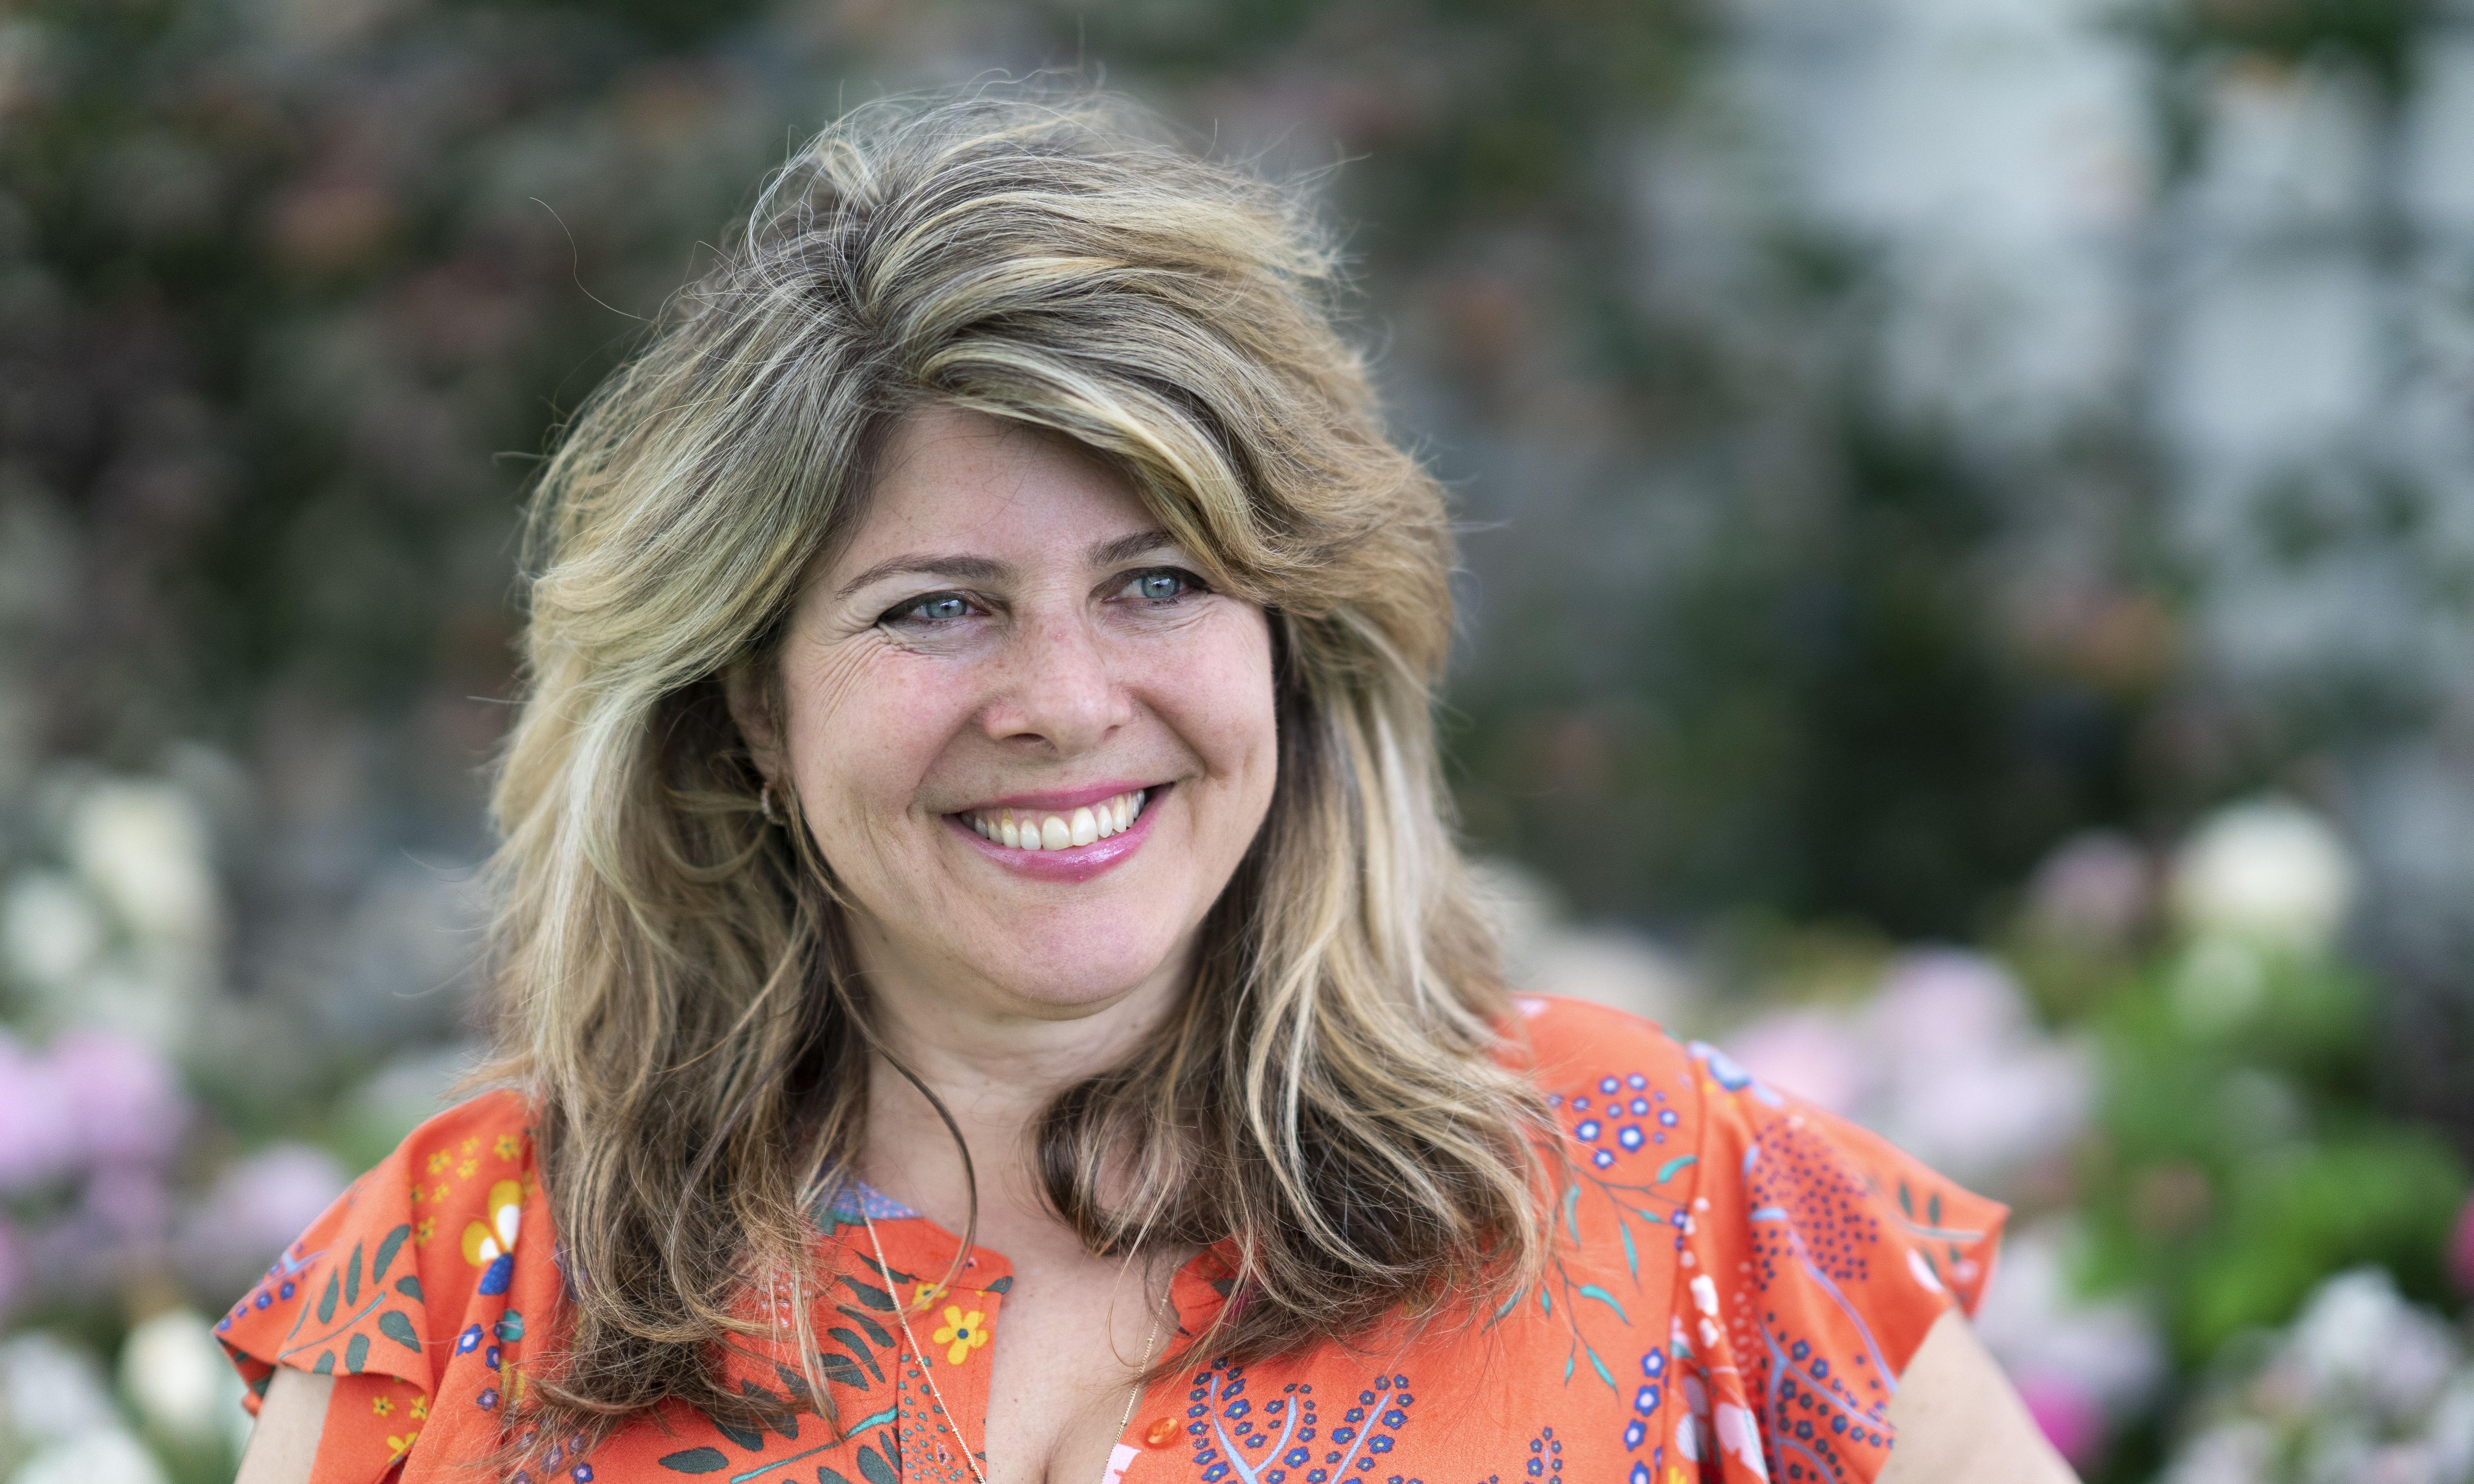 Outrages author Naomi Wolf stands by view of Victorian poet